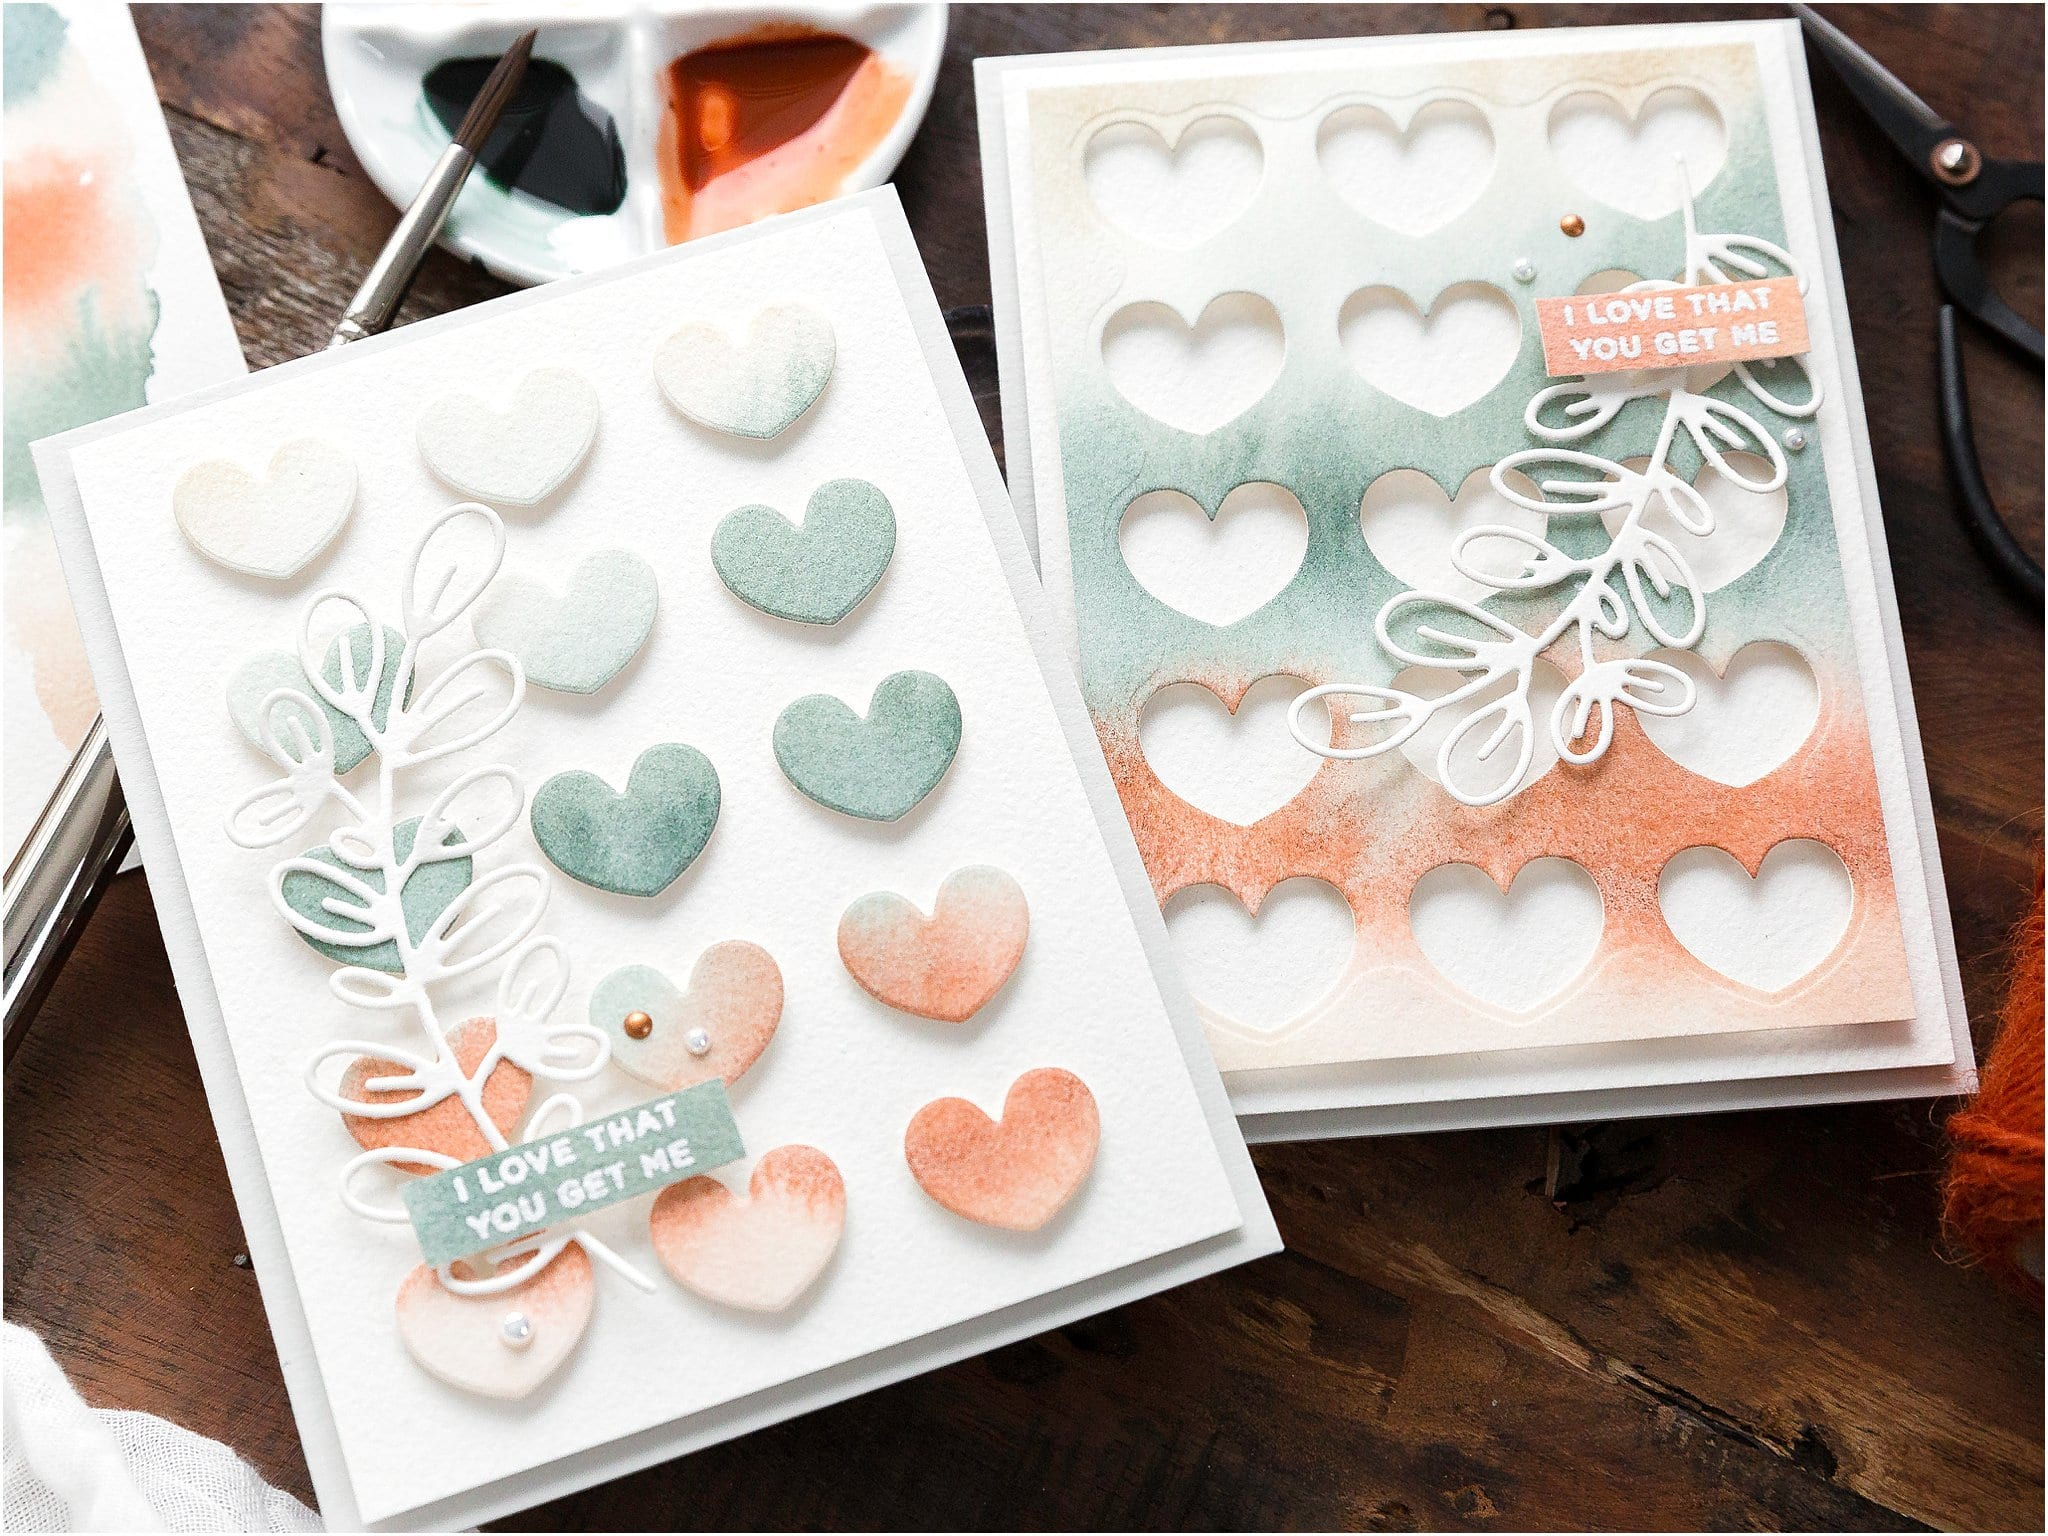 Video tutorial two-for-one and alternative colours for masculine cards. Handmade card by Debby Hughes #debbyhughes #limedoodledesign #handmadecards #cardmaking #cardmakingideas #cardmakingtechniques  #cardmakingtutorials #handmadecardideas #simonsaysstamp